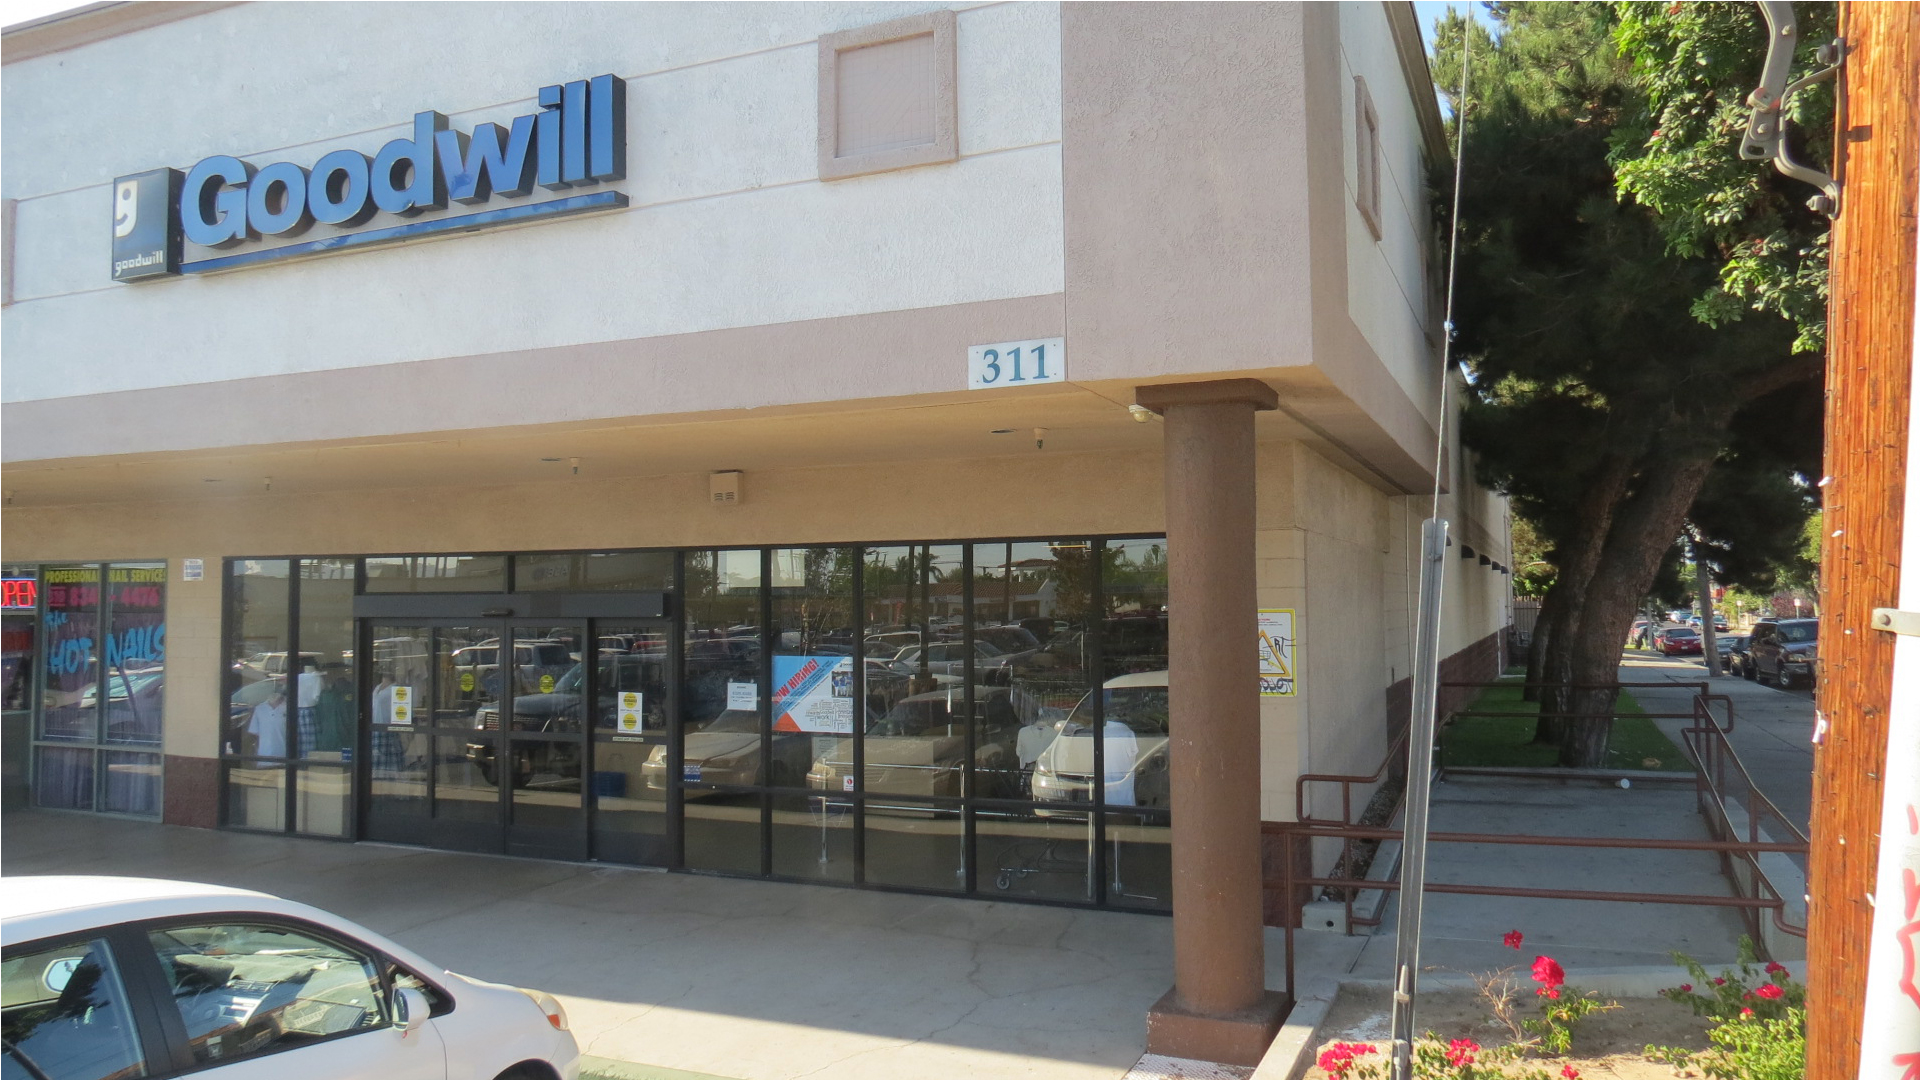 Wilmington Goodwill Retail Store & Donation Center